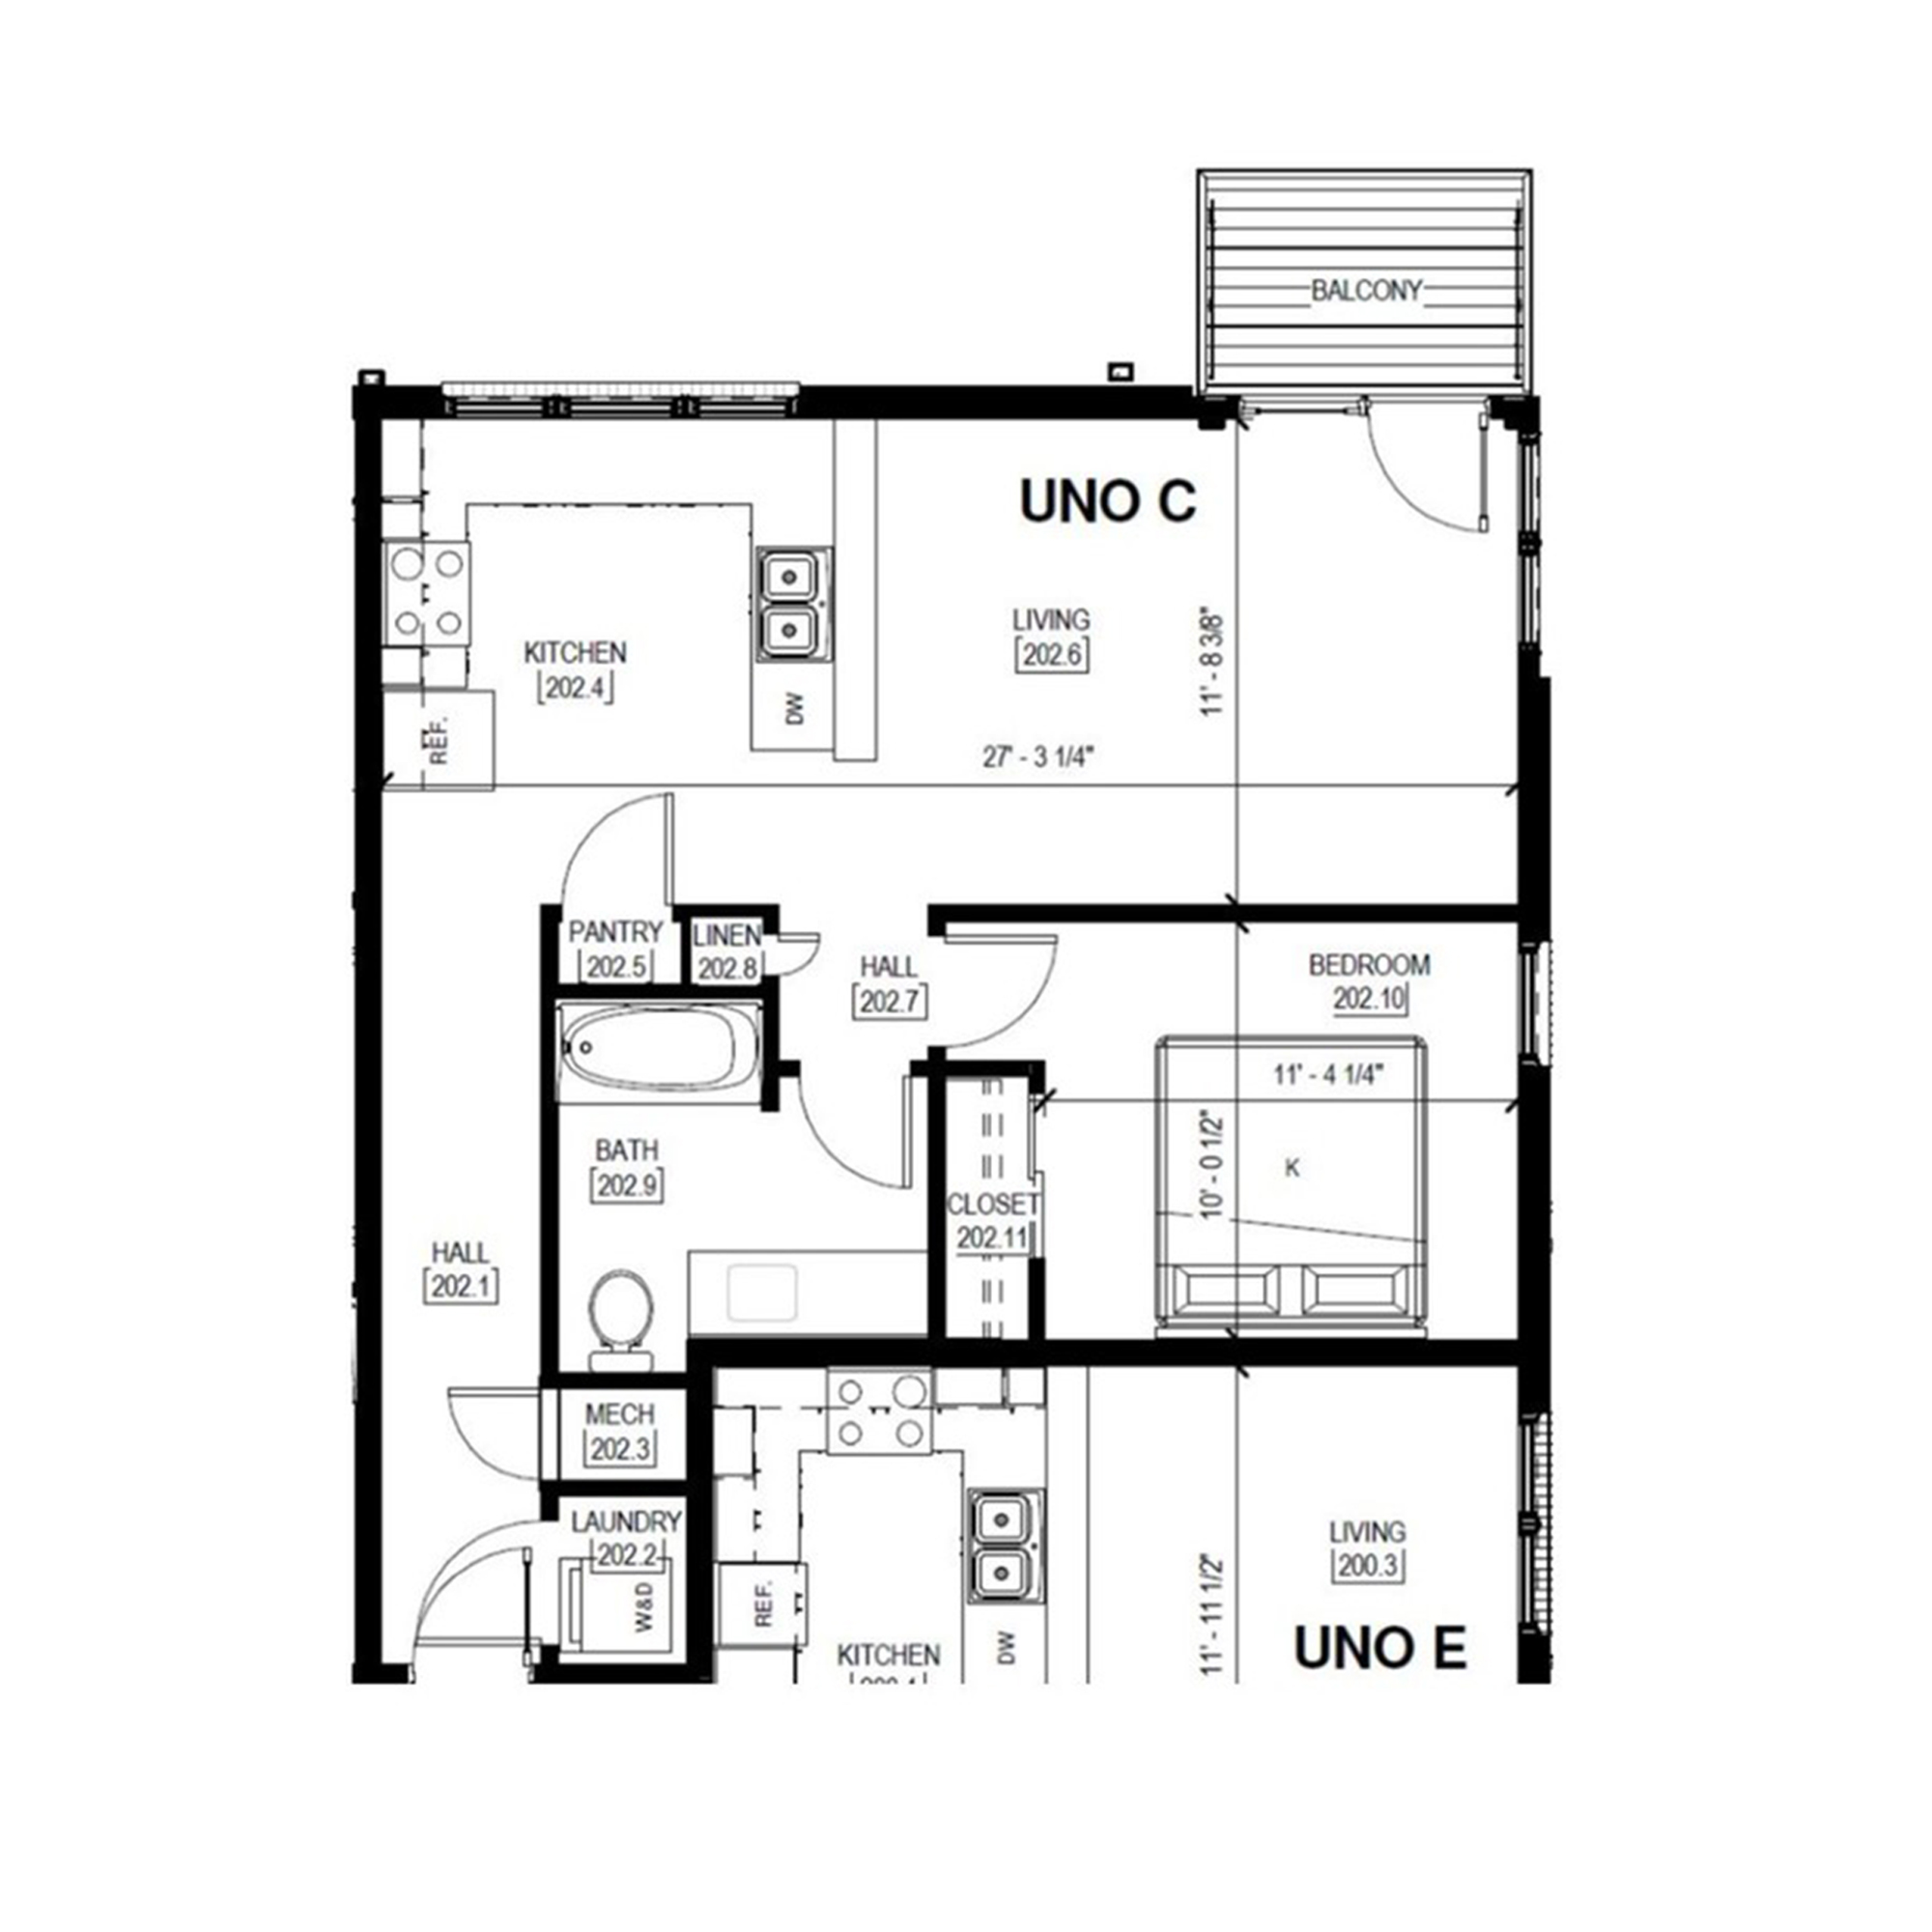 Uno C   1 Bed, 1 Bath